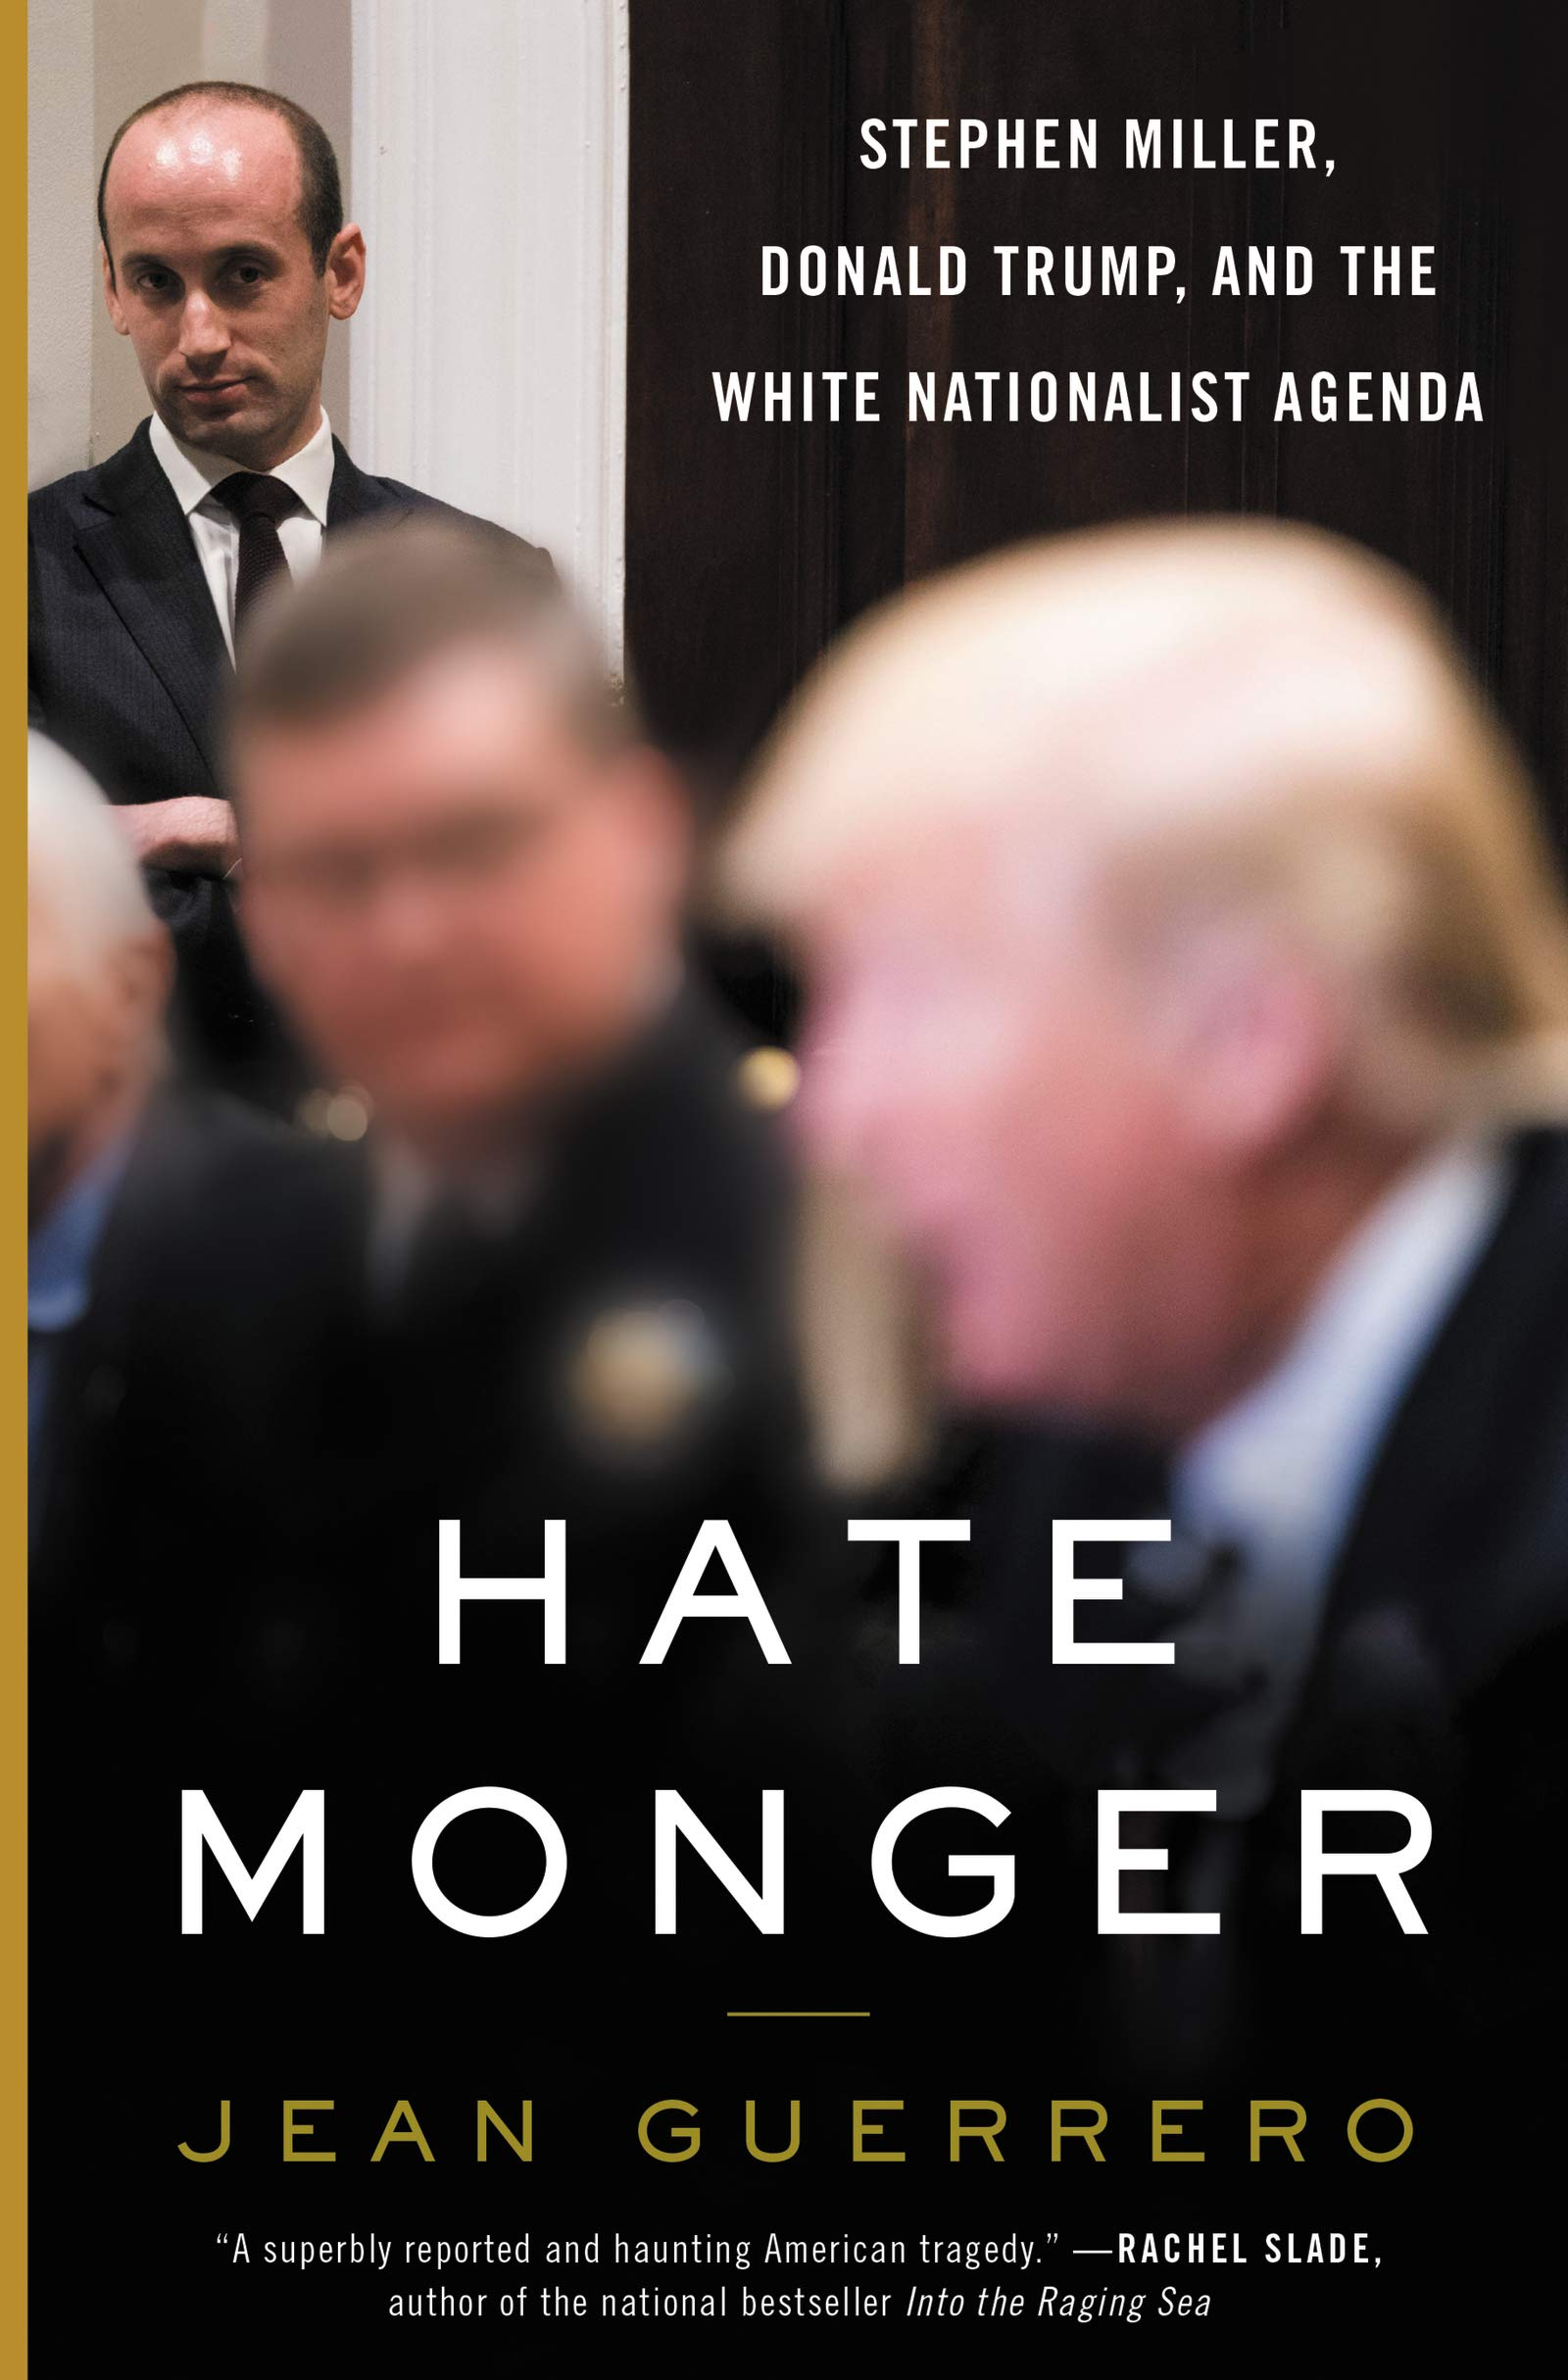 Image OfHatemonger: Stephen Miller, Donald Trump, And The White Nationalist Agenda